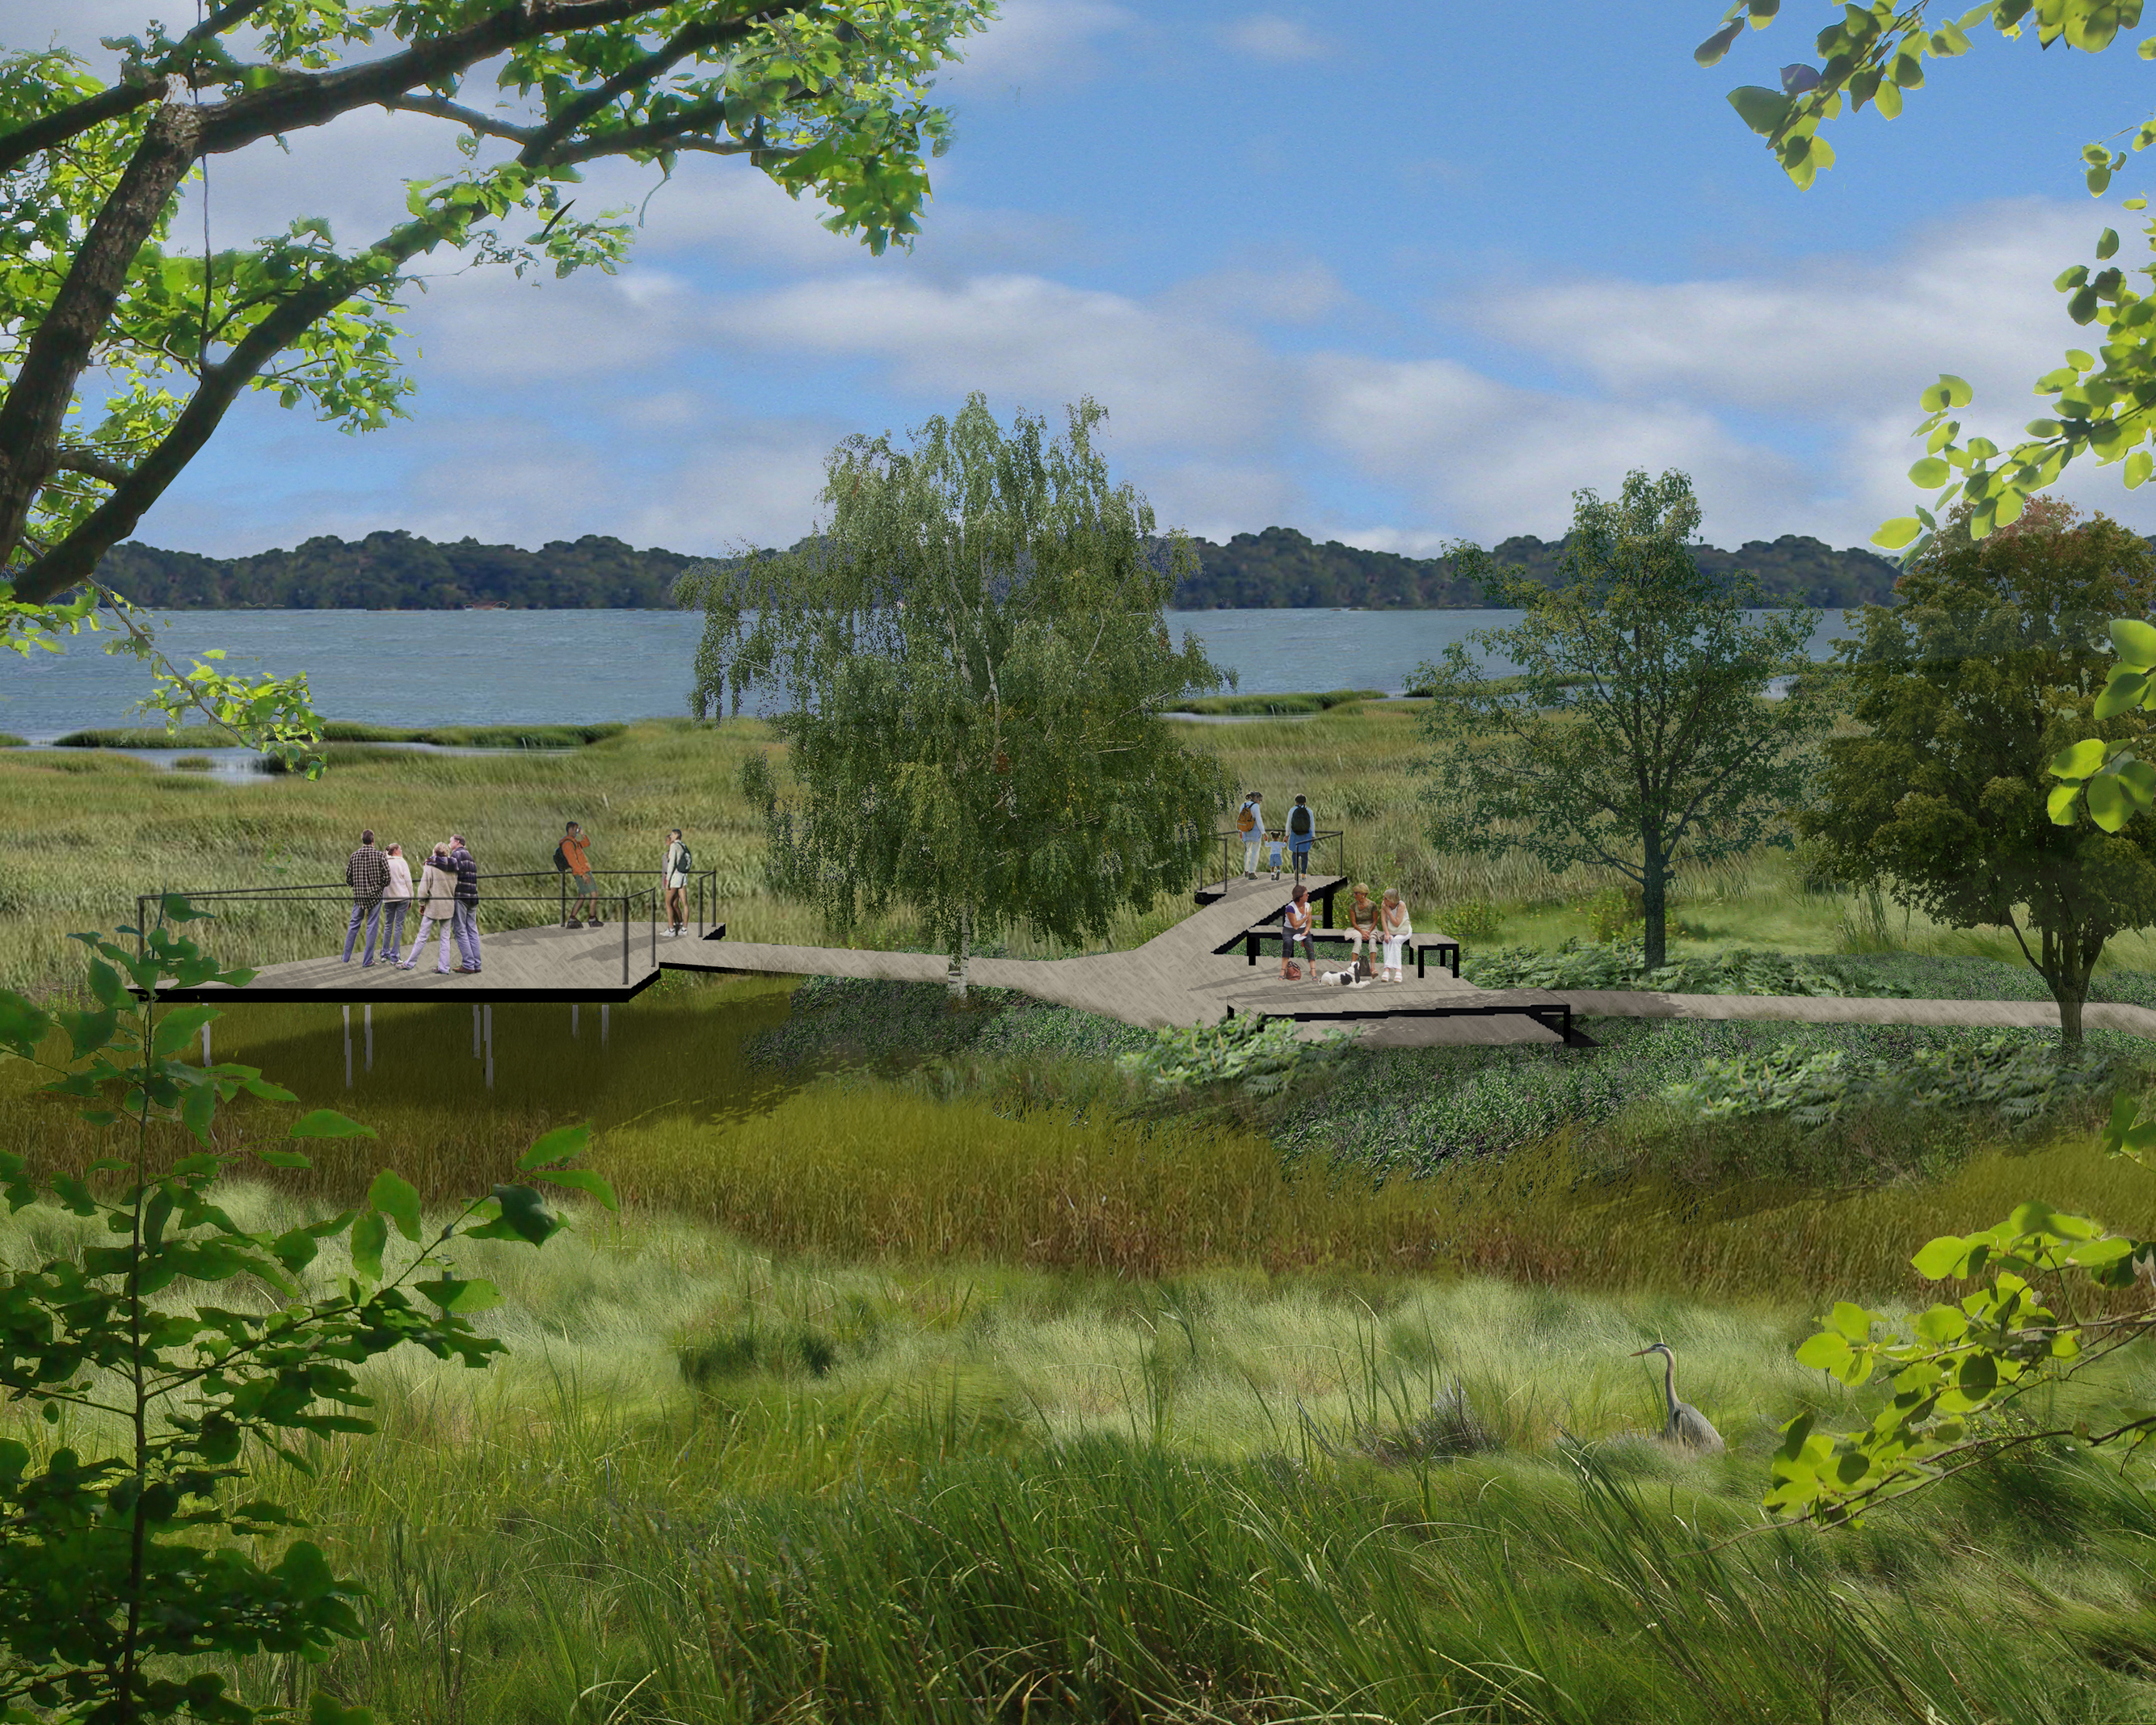 rendering showing a wooden platform over a wetland with people enjoying the view